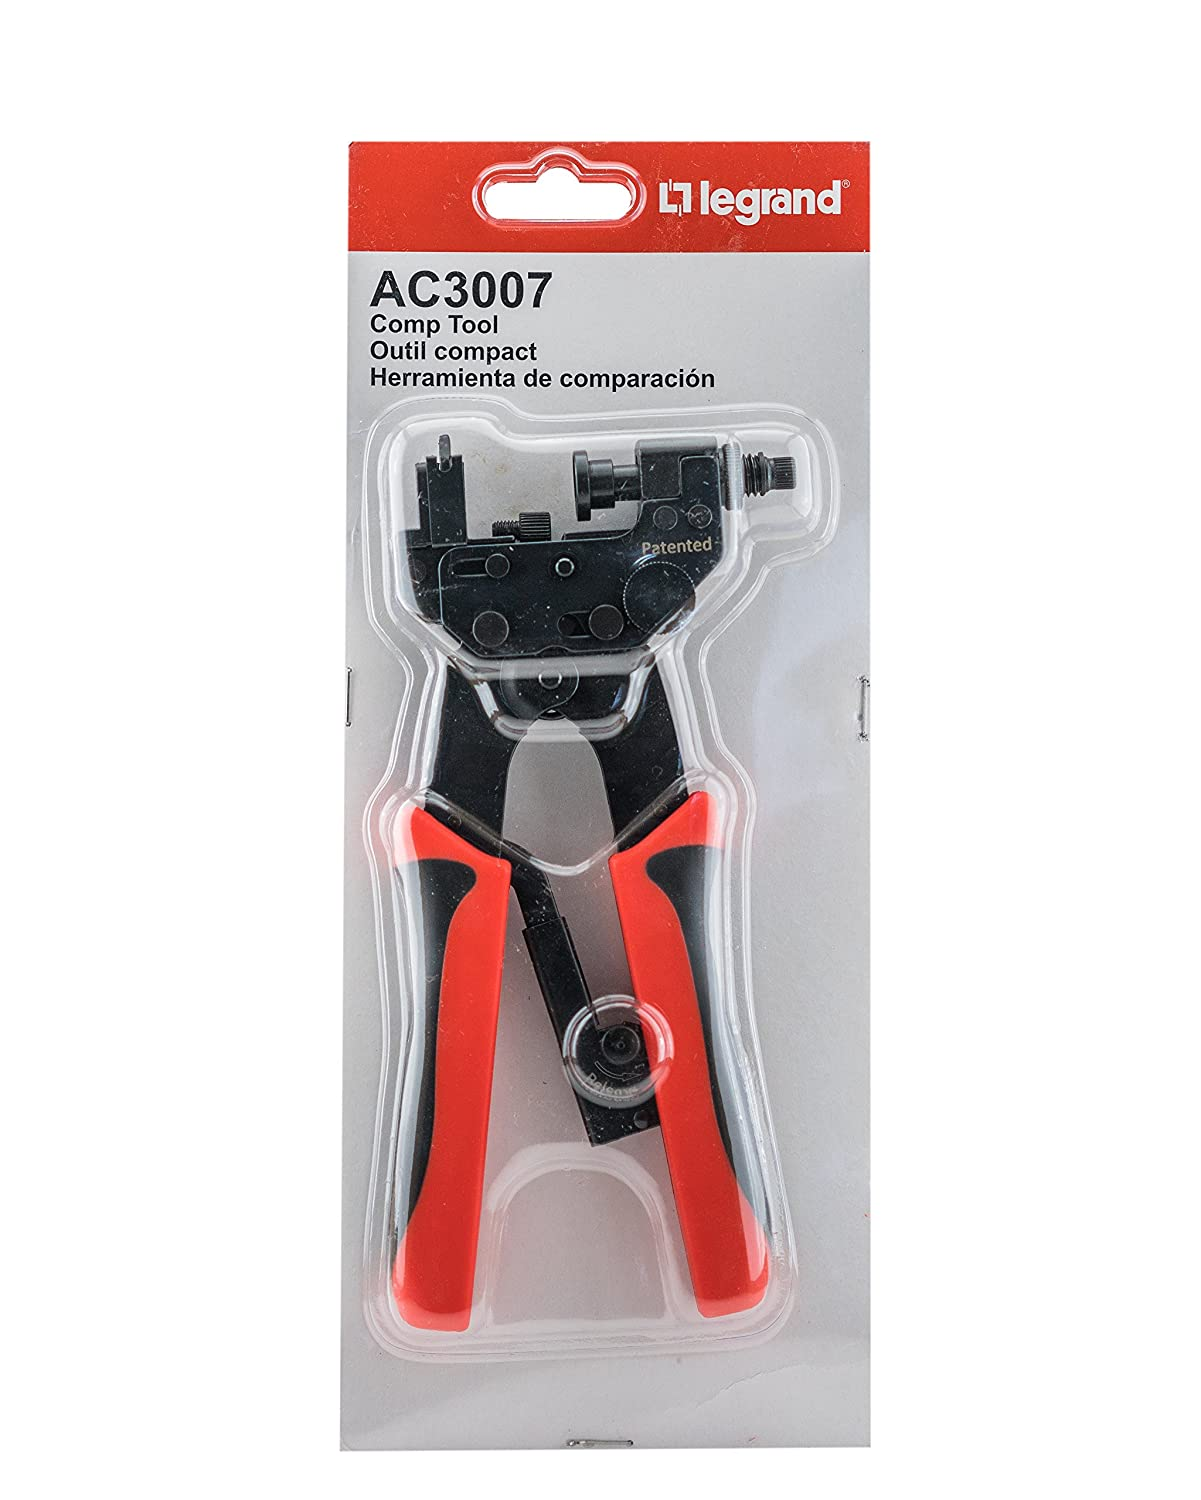 Legrand - On-Q AC3007 Adjustable Compression Tool, RG6 RG59 Coaxial Connectors Crimper - - Amazon.com